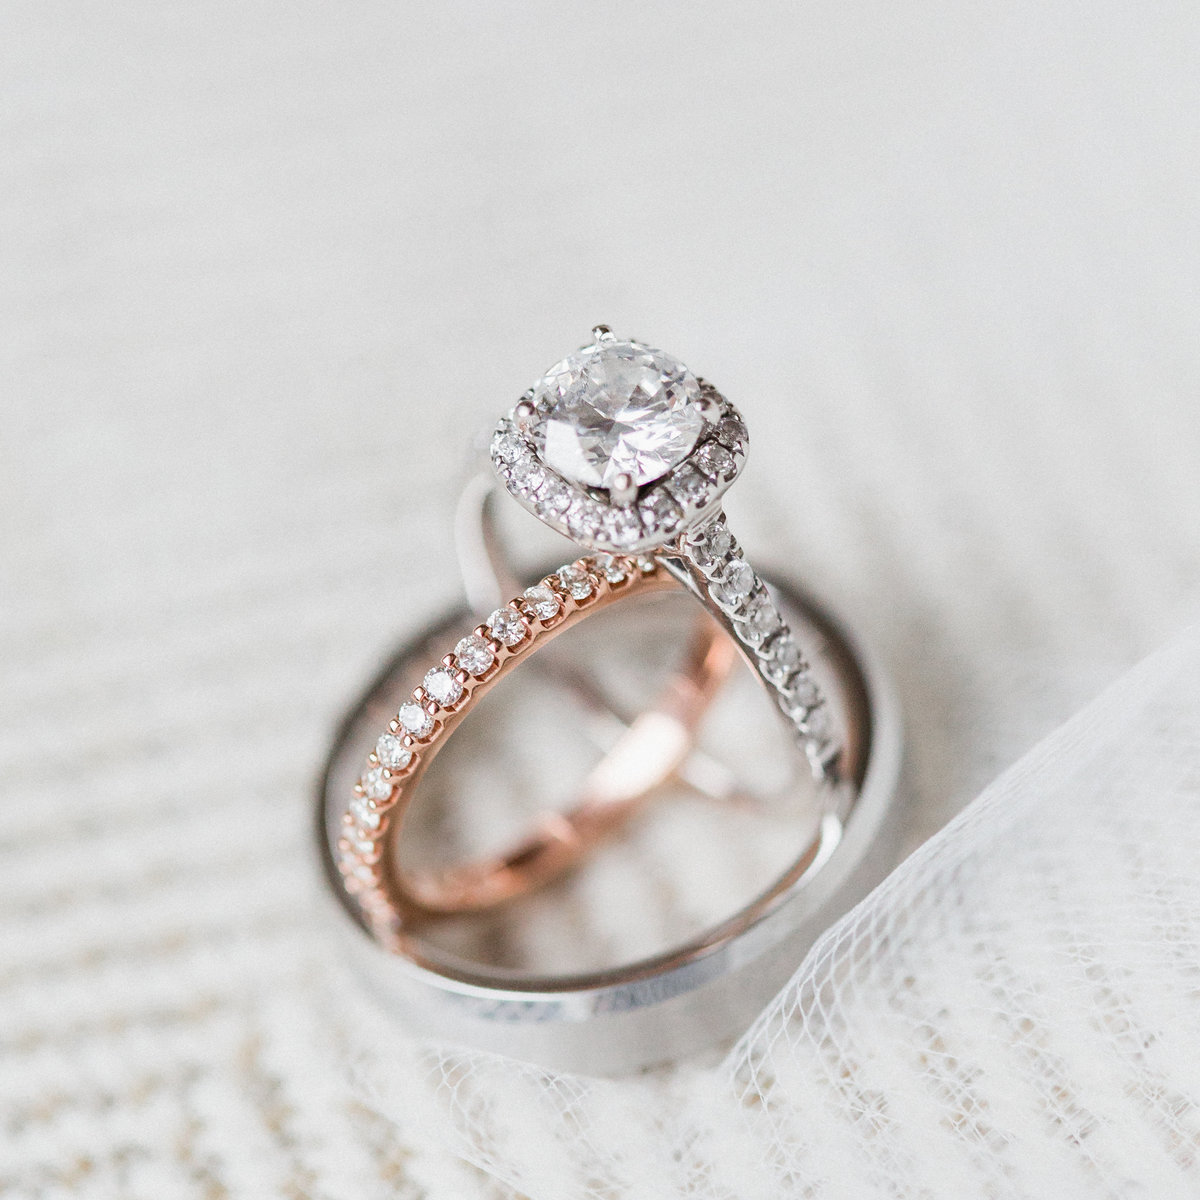 67_platinum_rose_gold_wedding_rings